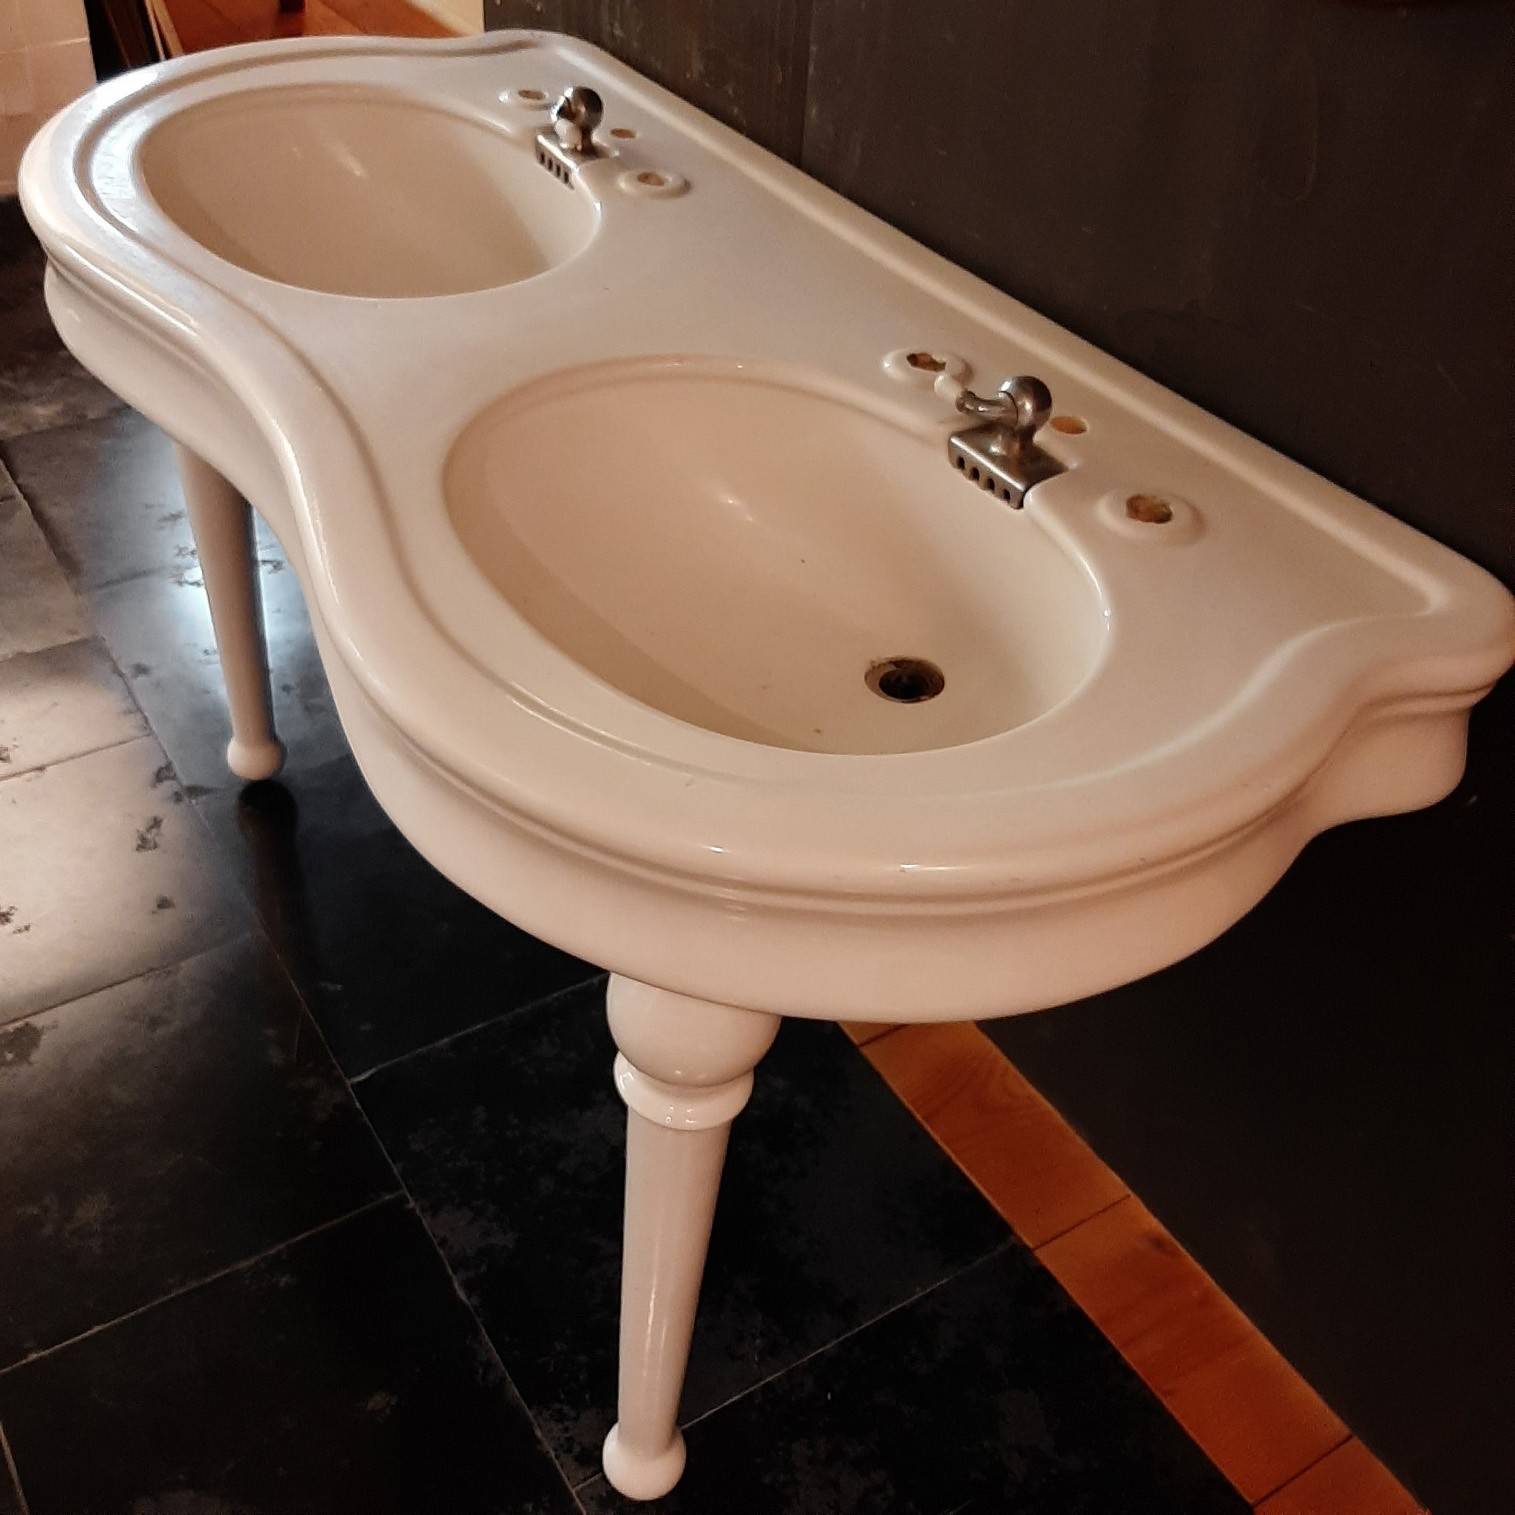 Antique ceramic washbasin with double sink